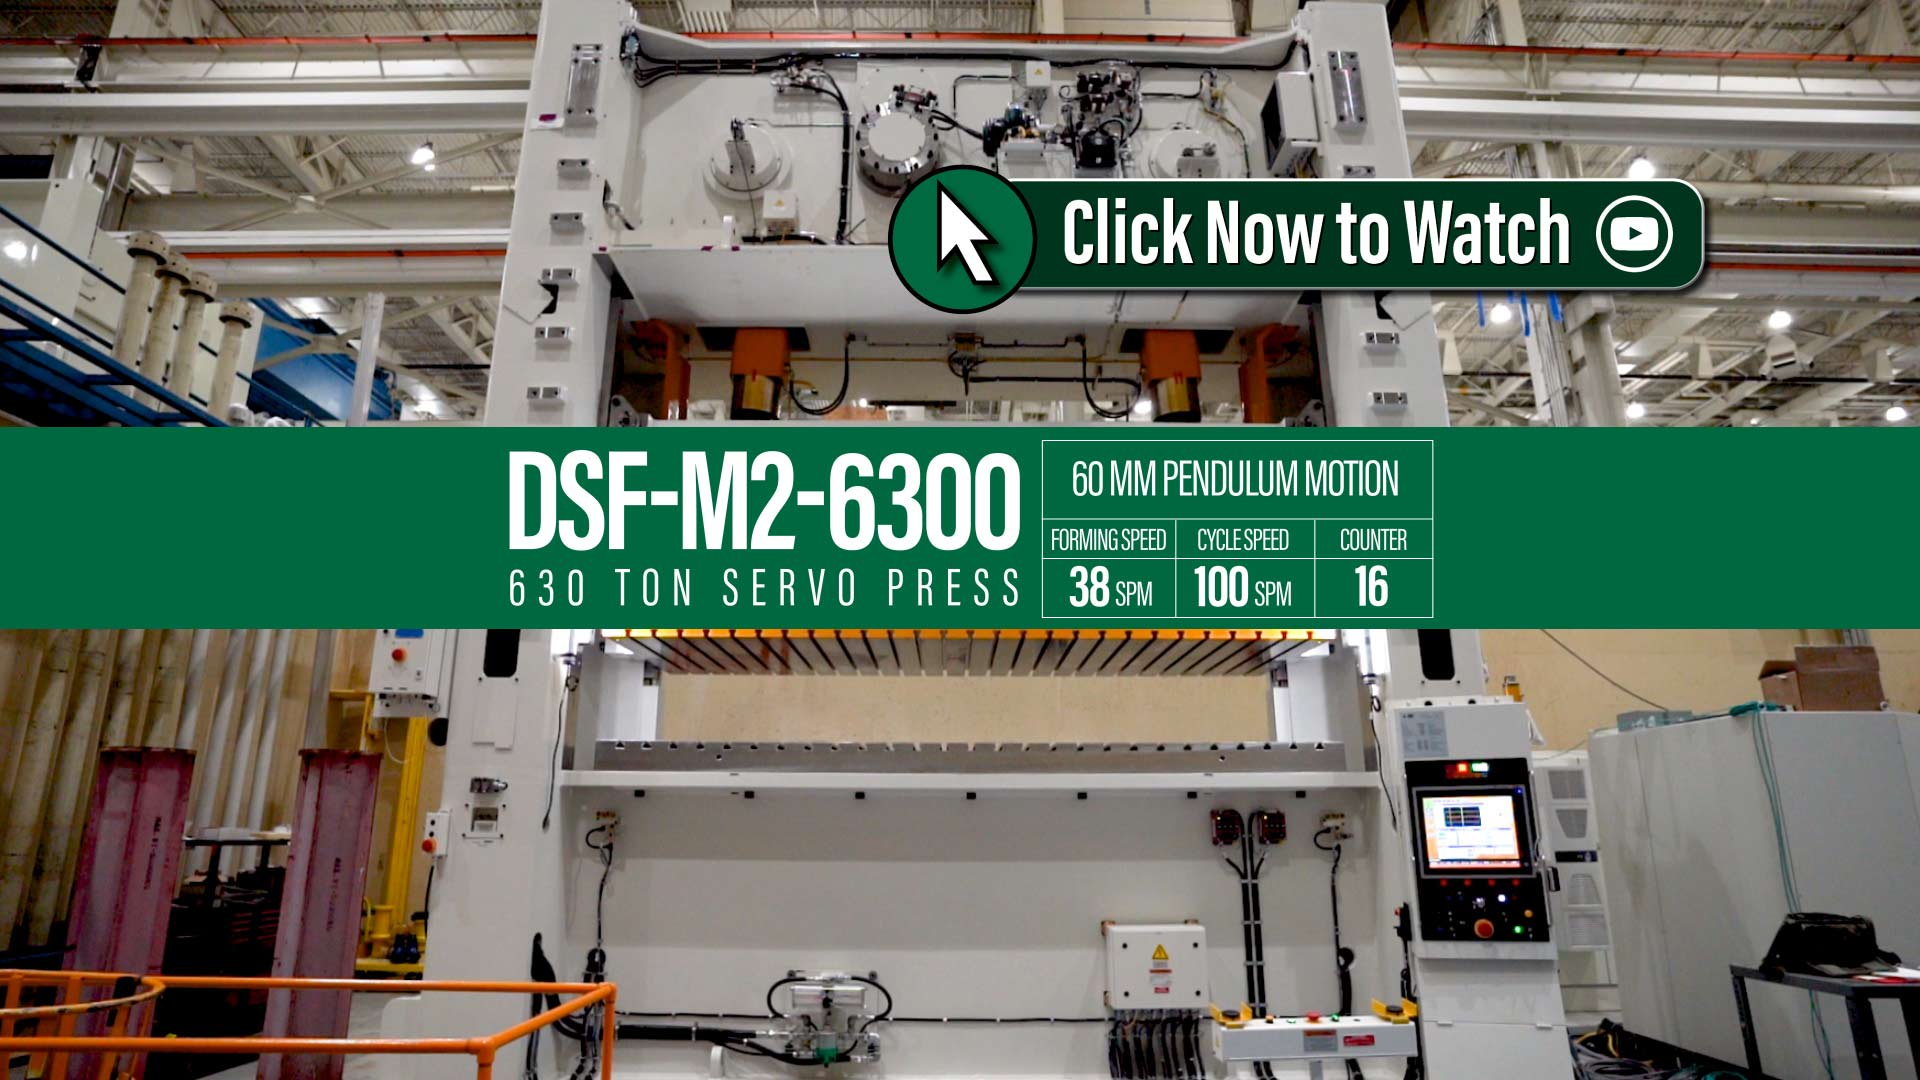 AIDA DSF-M2 Staightside Prog Die & Transfer Servo Press Motion Profile Video - Learn How to Solve Your Production Challenges.